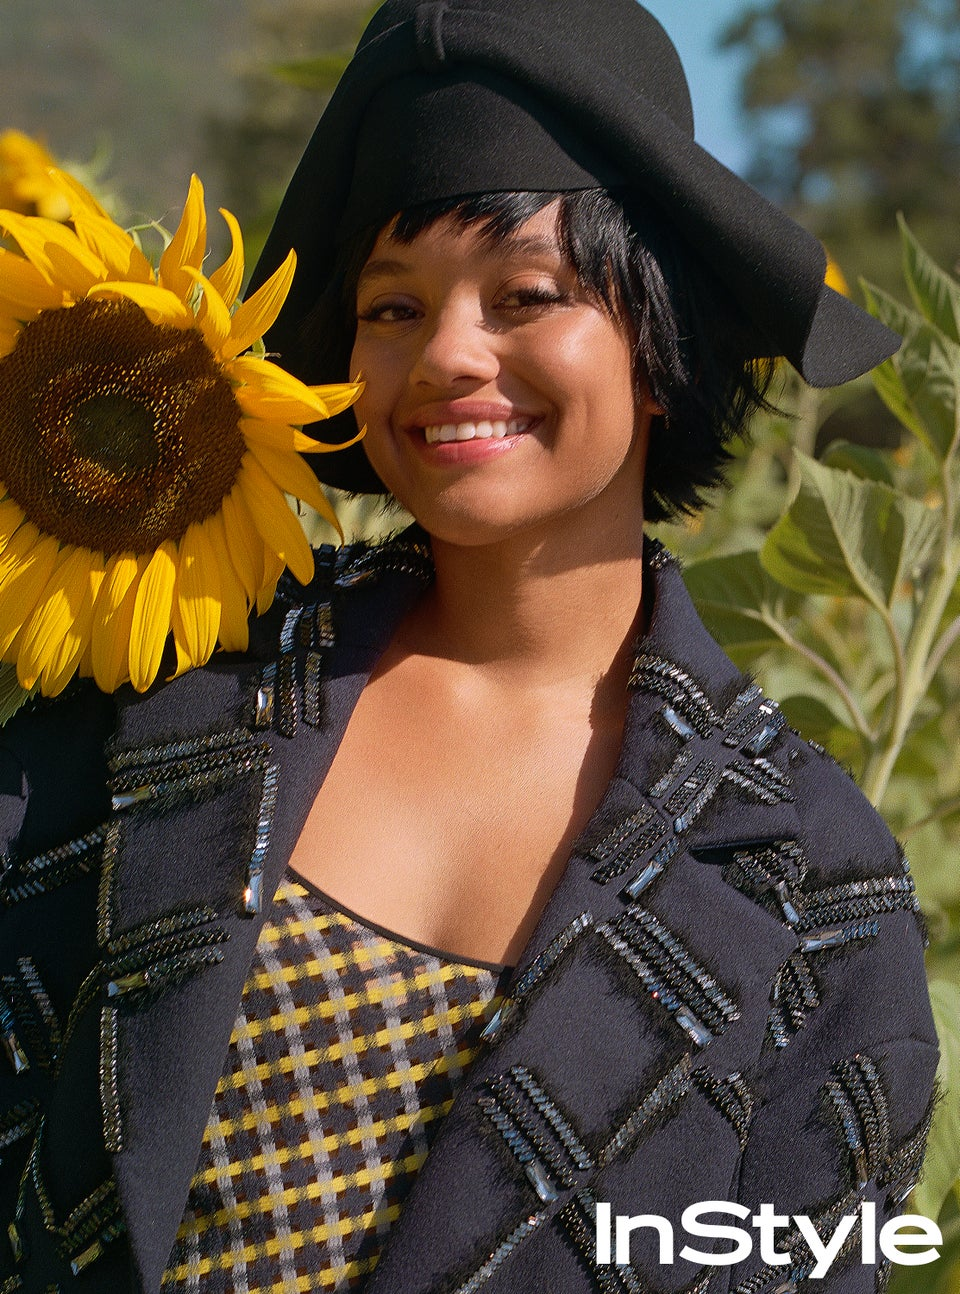 How To Embrace Your Natural Beauty, According To Dope's Breakout Star Kiersey Clemons